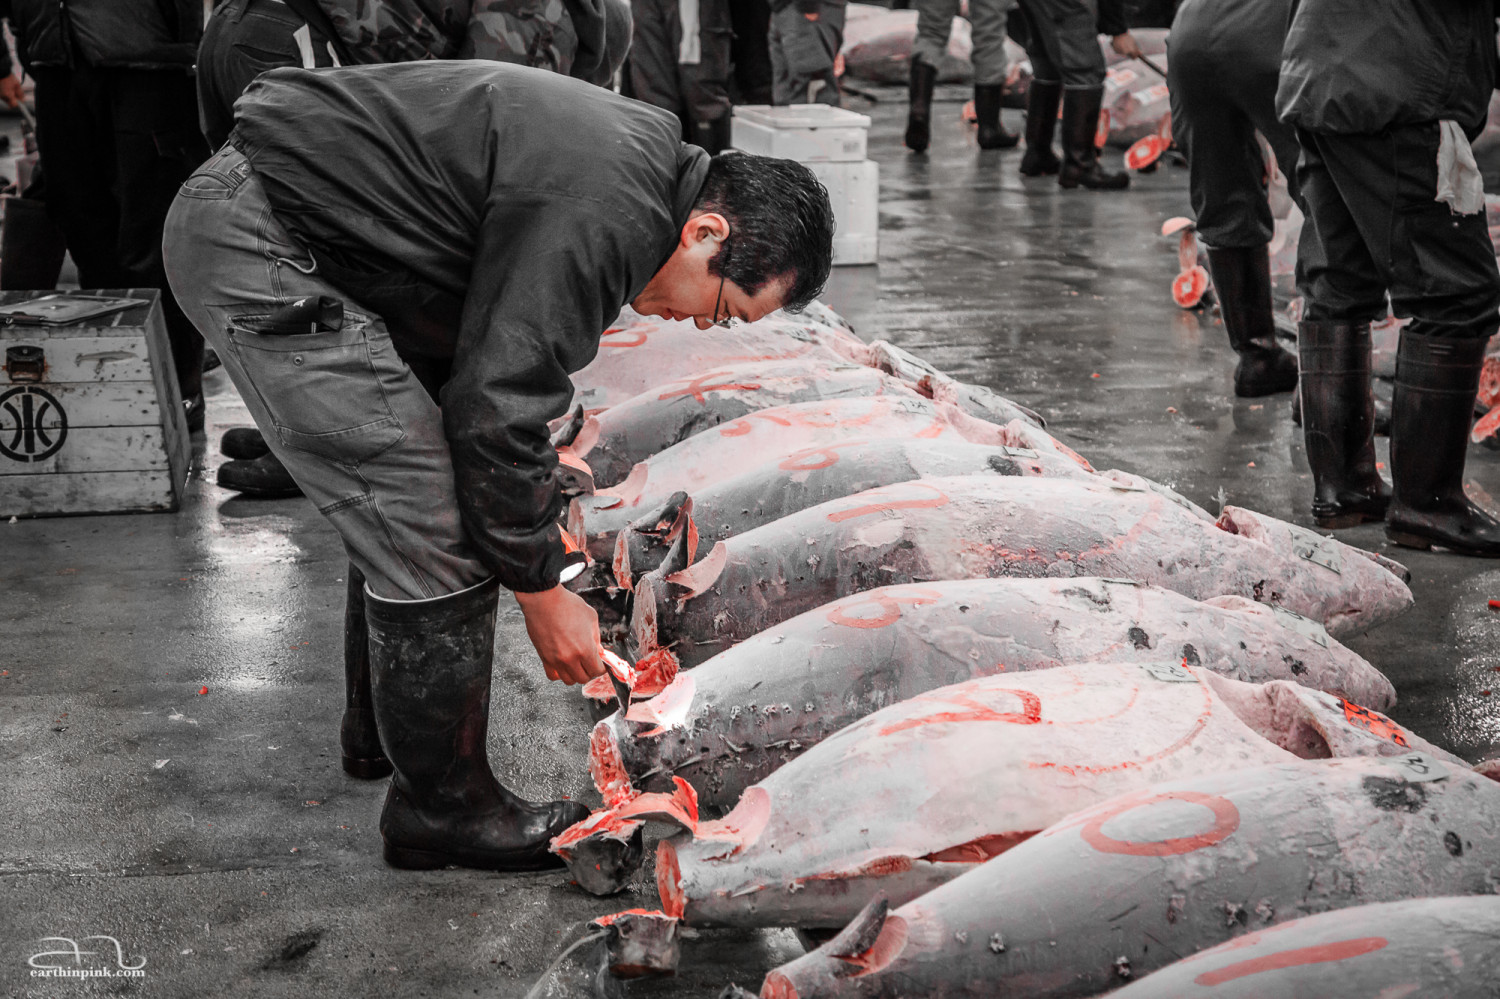 Potential buyers inspect the merchandise just before the tuna auction at the famous Tsukiji fish market.